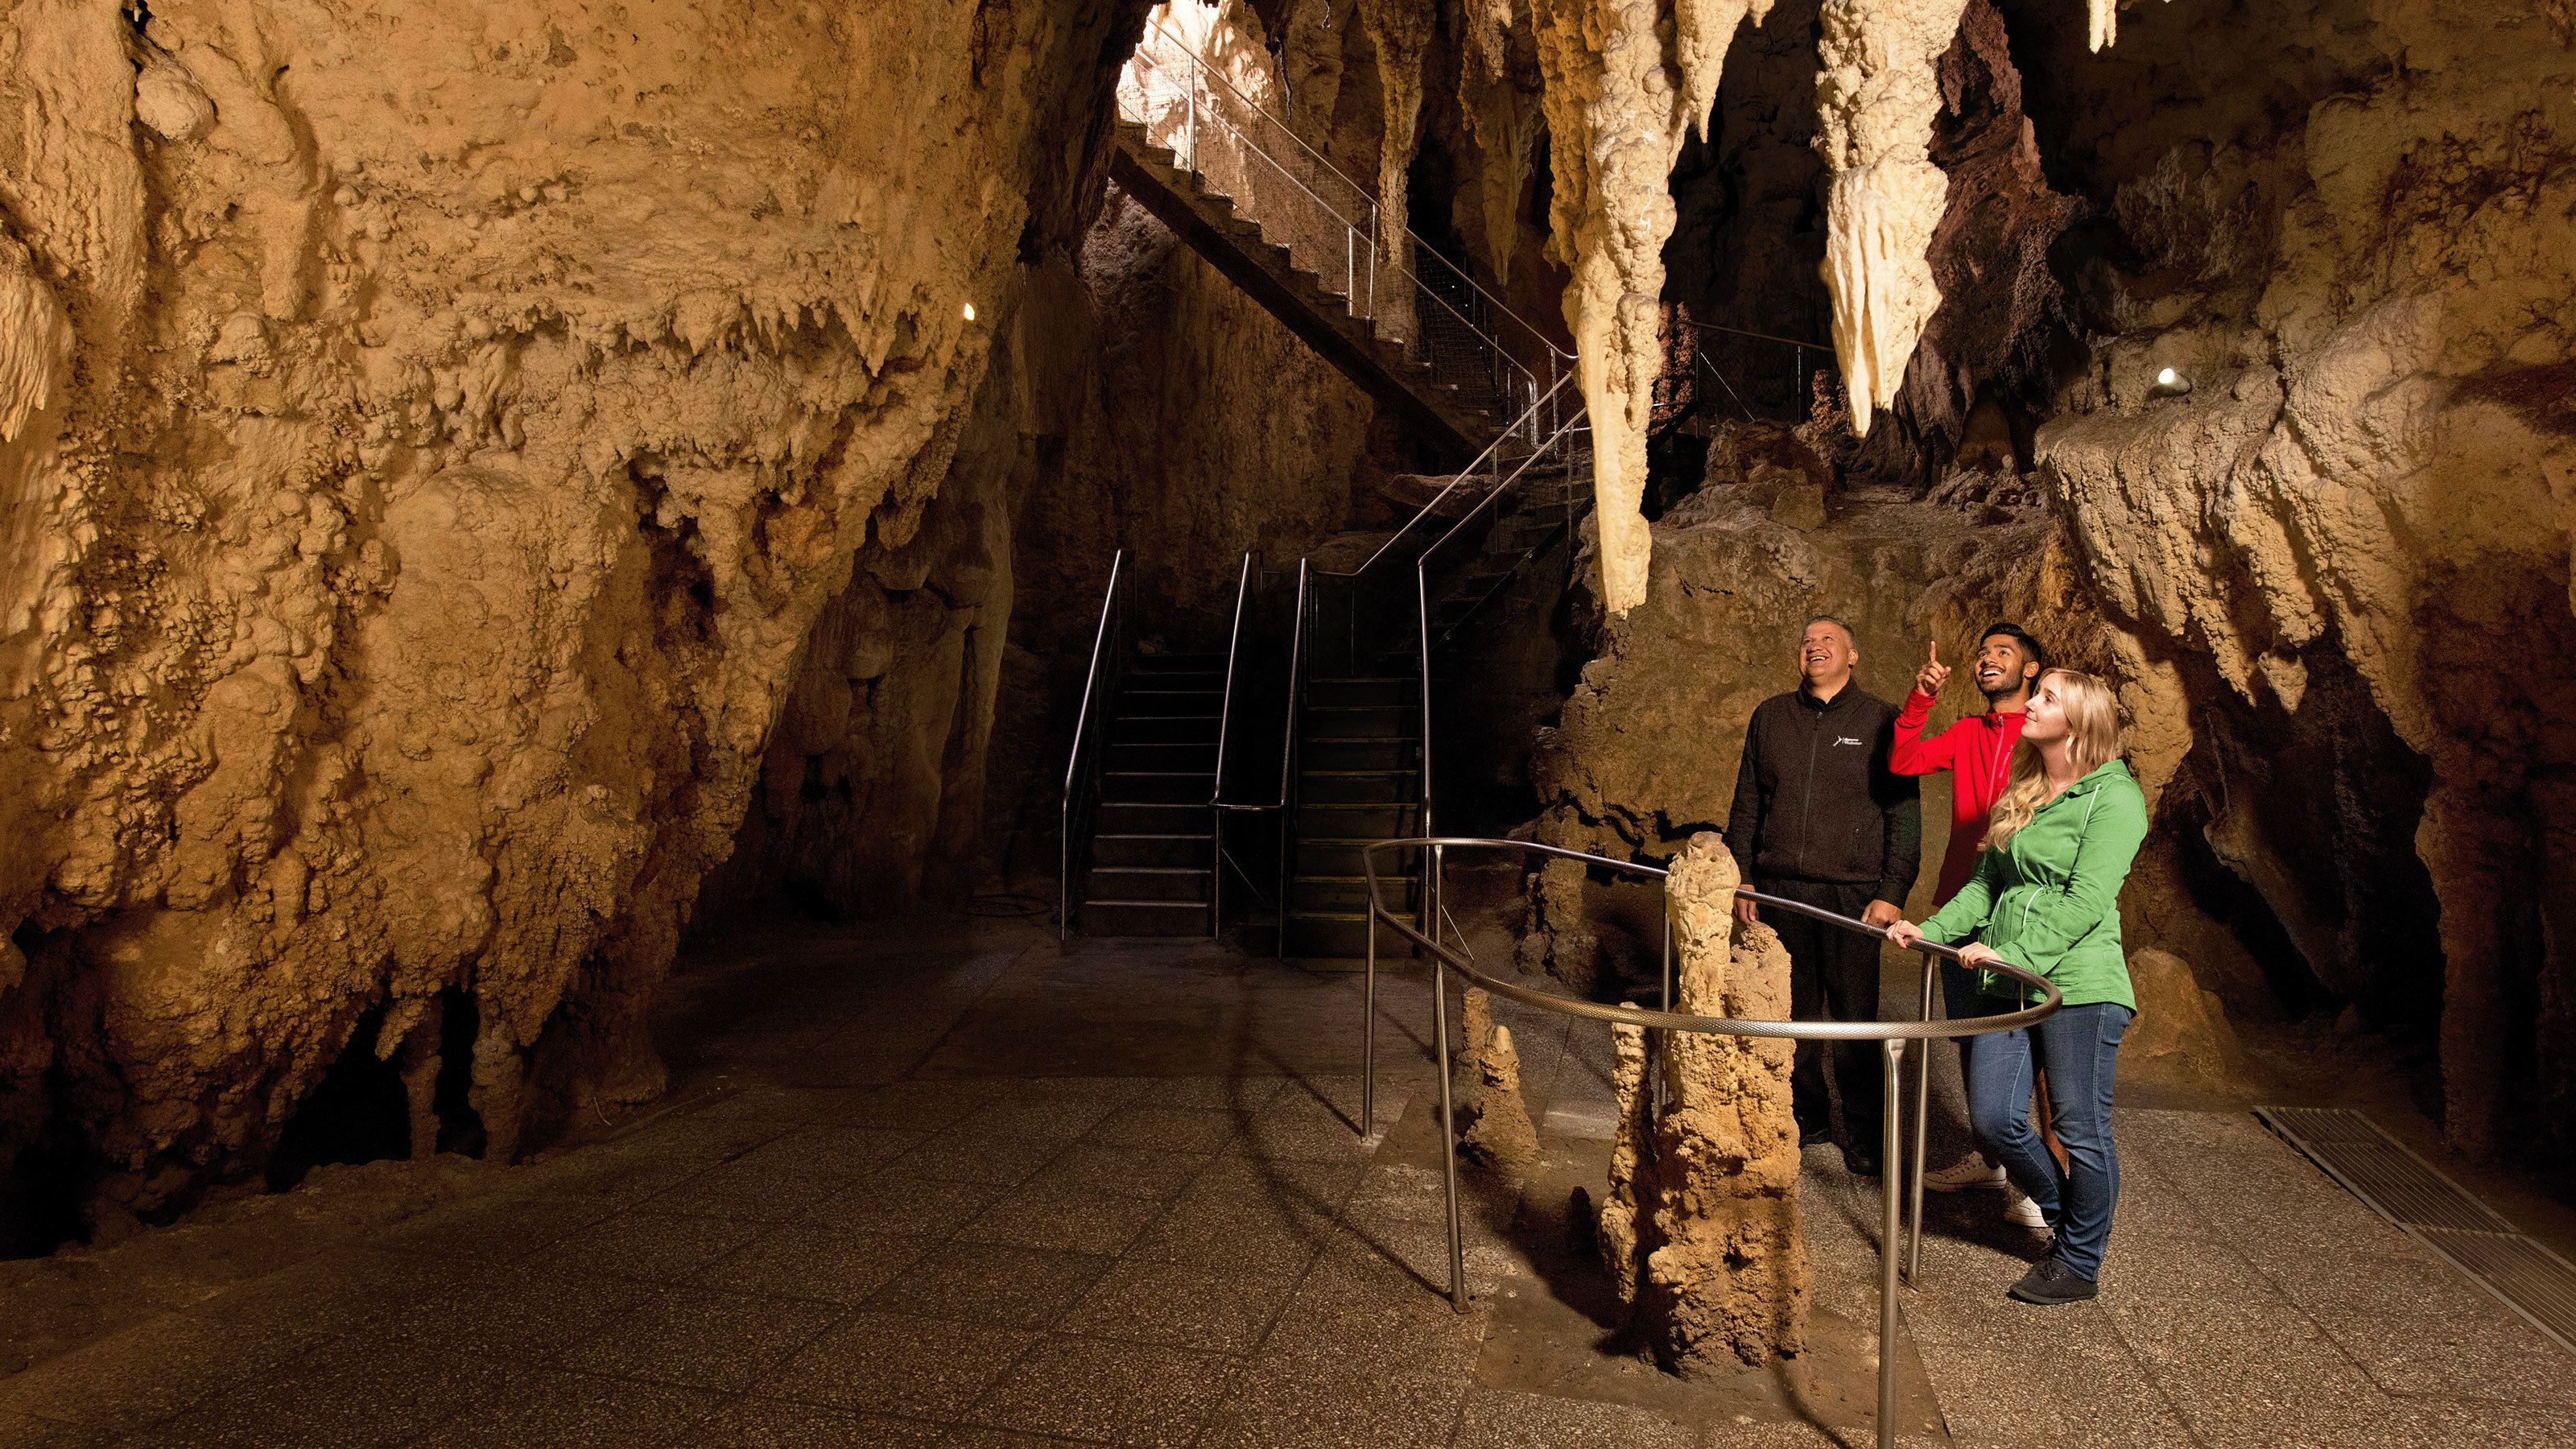 Group looking at stalactites in the Waitomo caves in New Zealand